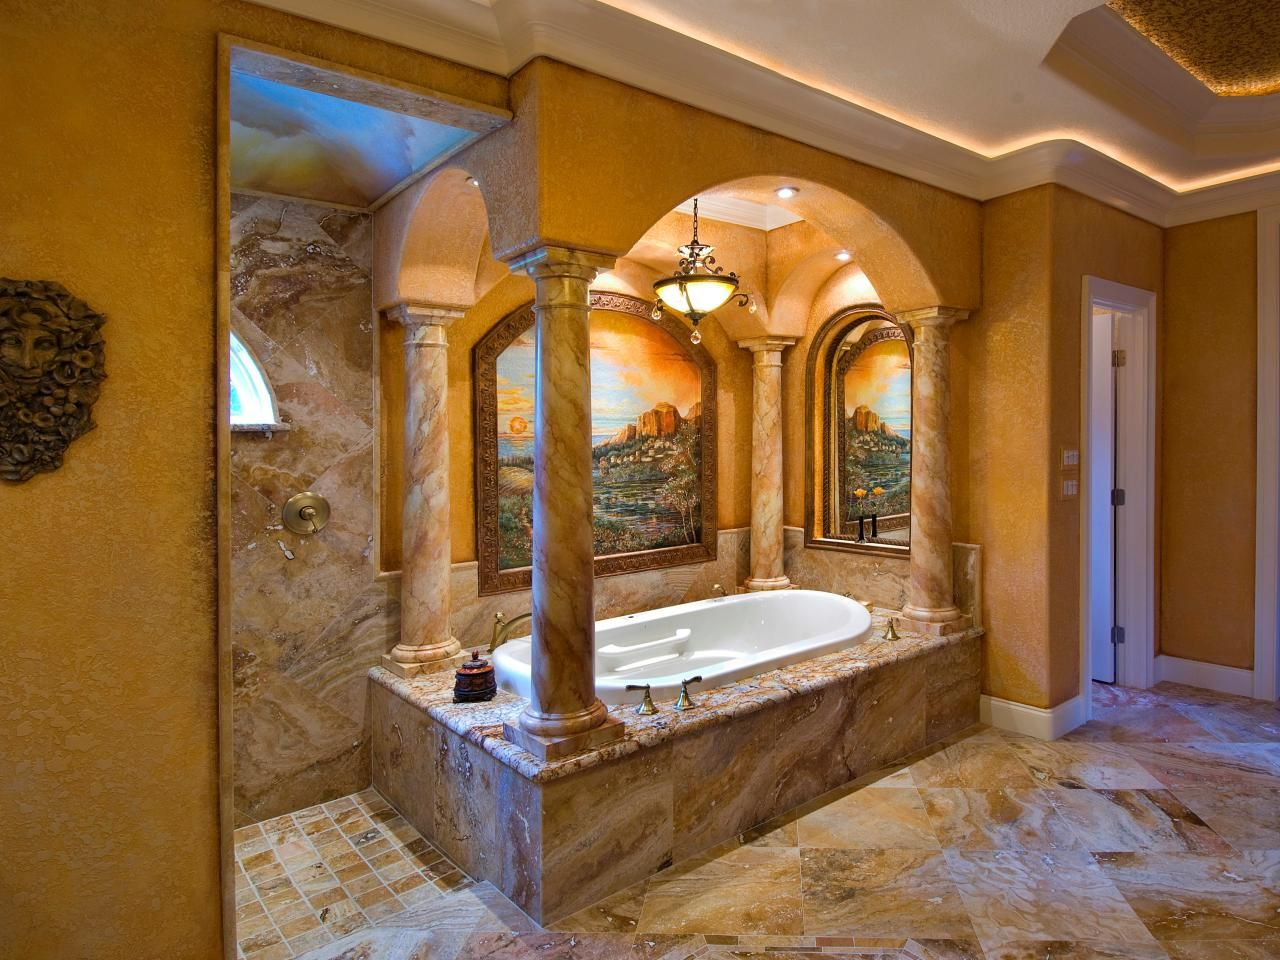 Beau Best Images, Photos And Pictures Gallery About Tuscan Bathroom Ideas    Tuscan Style Homes. #tuscan Bathroom # Bathroomdecor #tuscanstylehomes  #homedecor ...